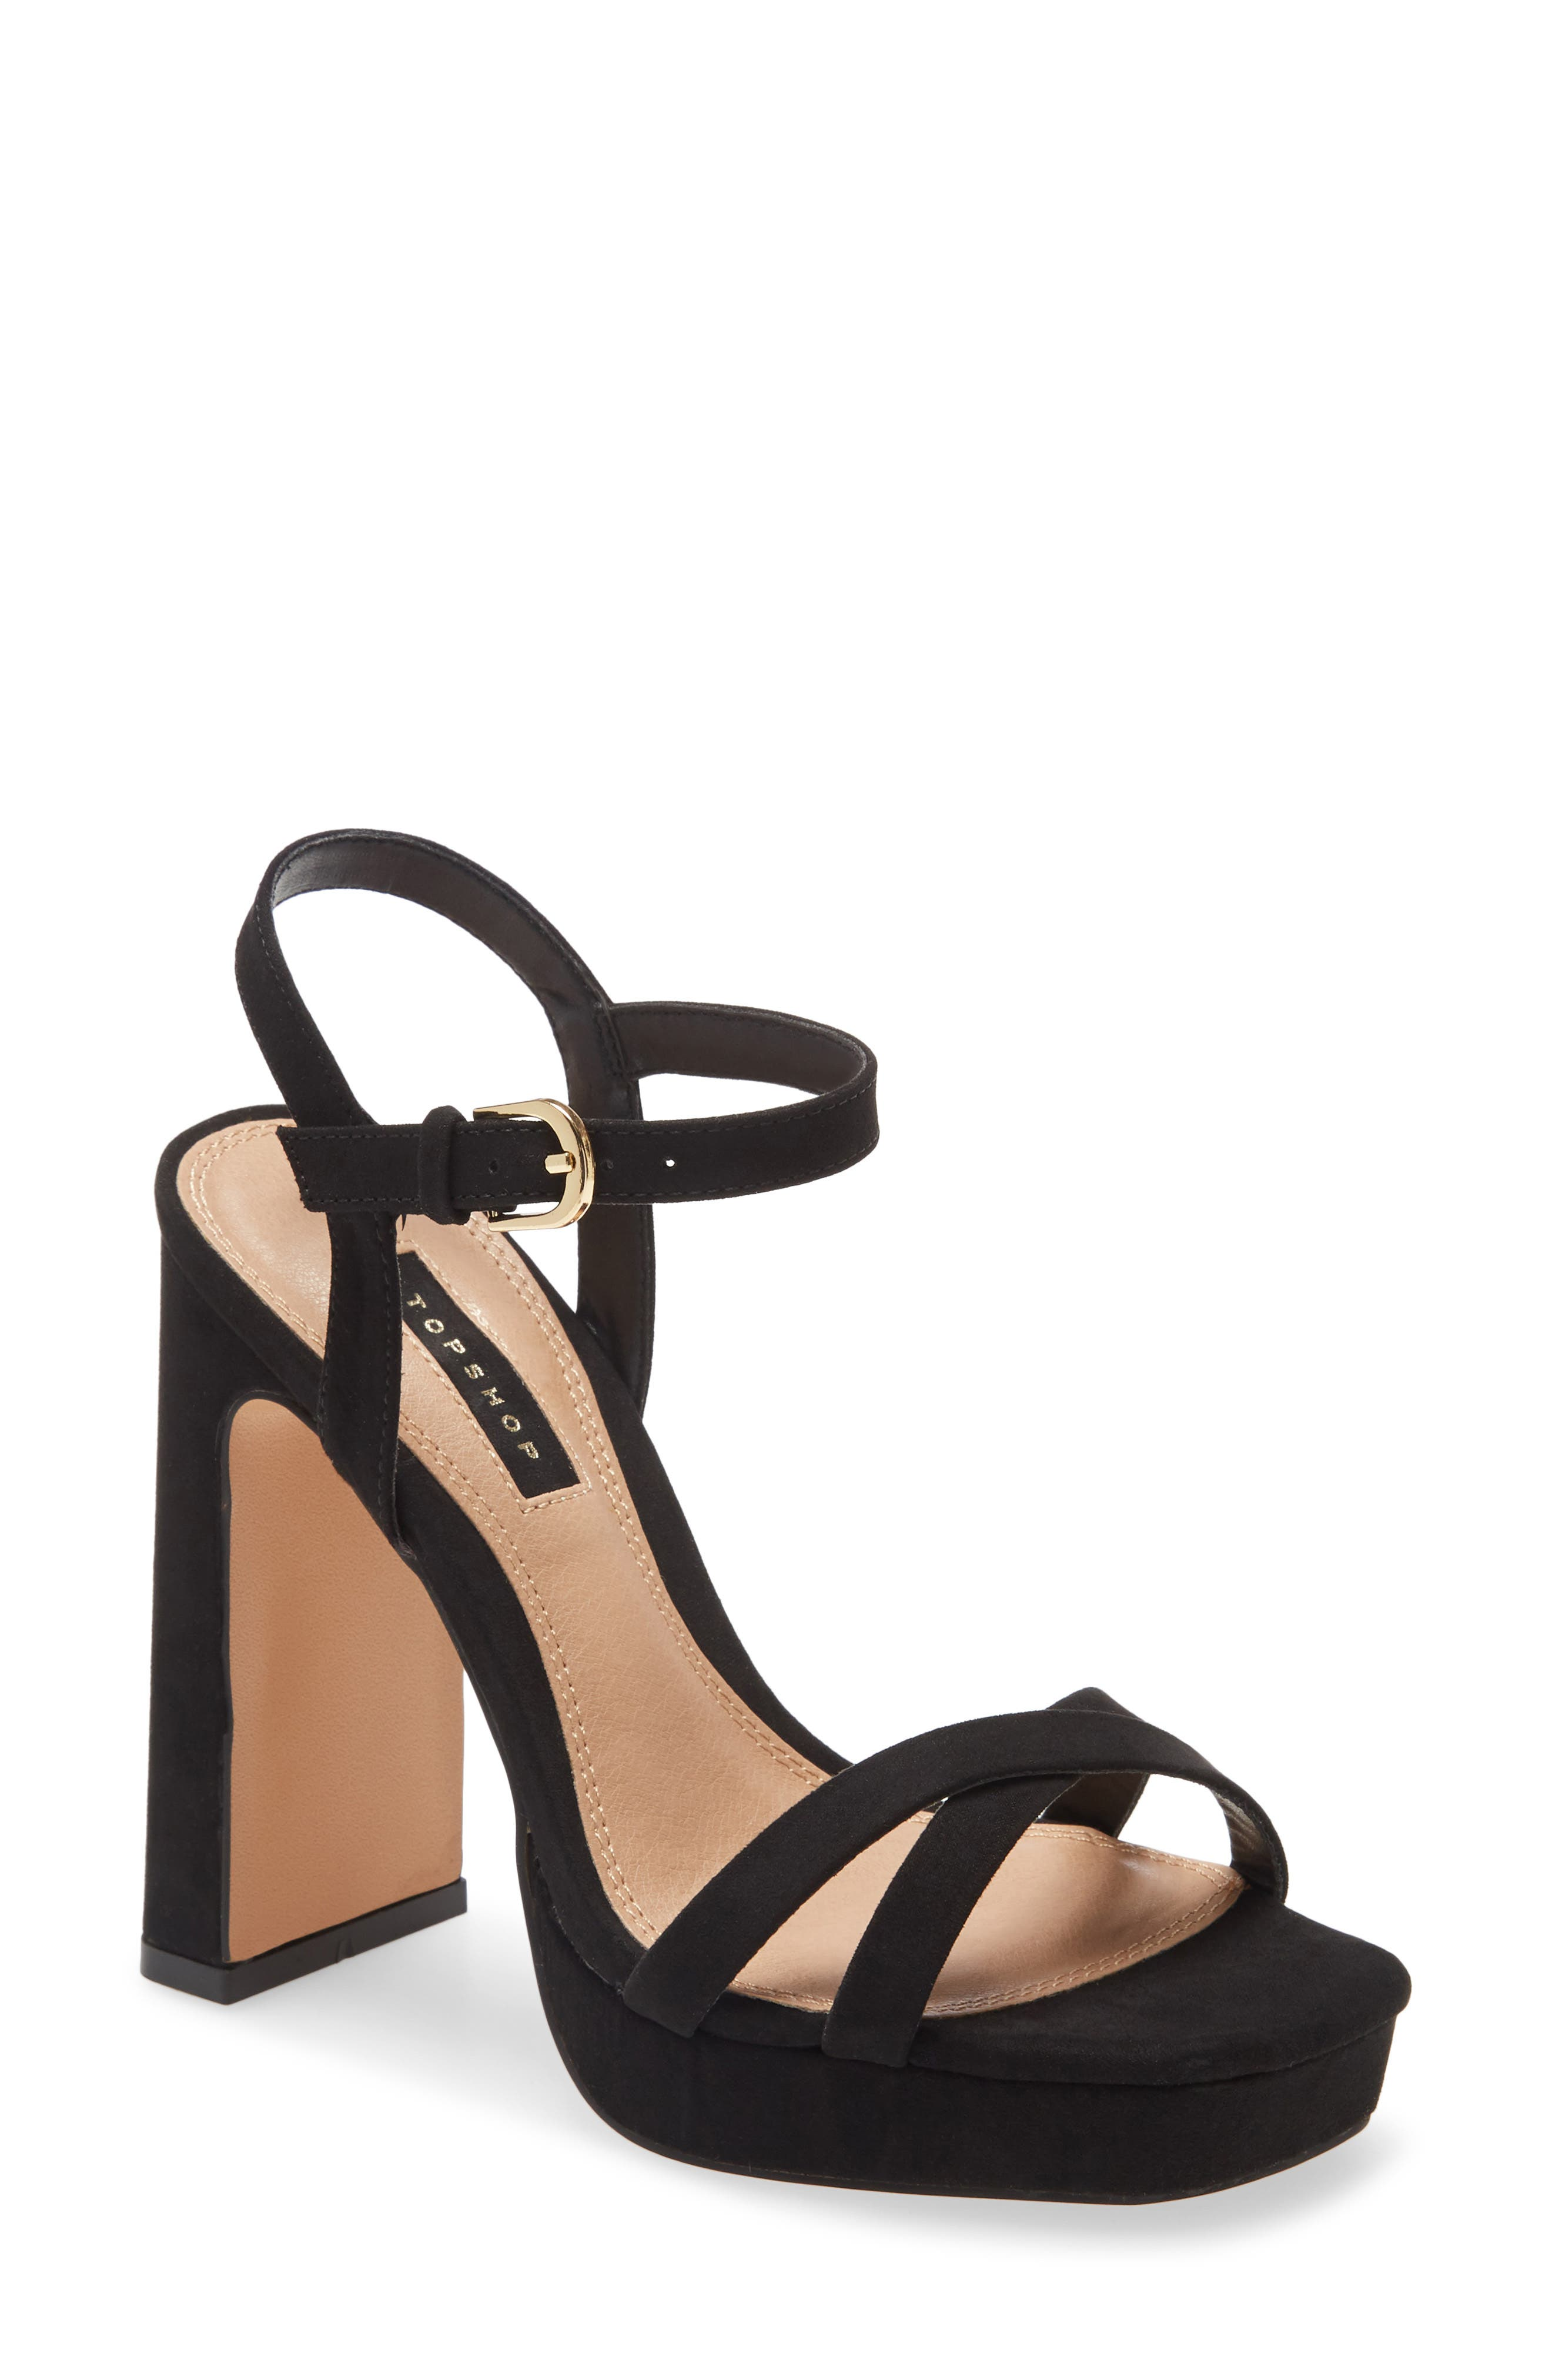 A lofty block heel and platform sole make this strappy sandal a retro-chic standout. Style Name: Topshop Sienna Platform Sandal (Women). Style Number: 6037833. Available in stores.